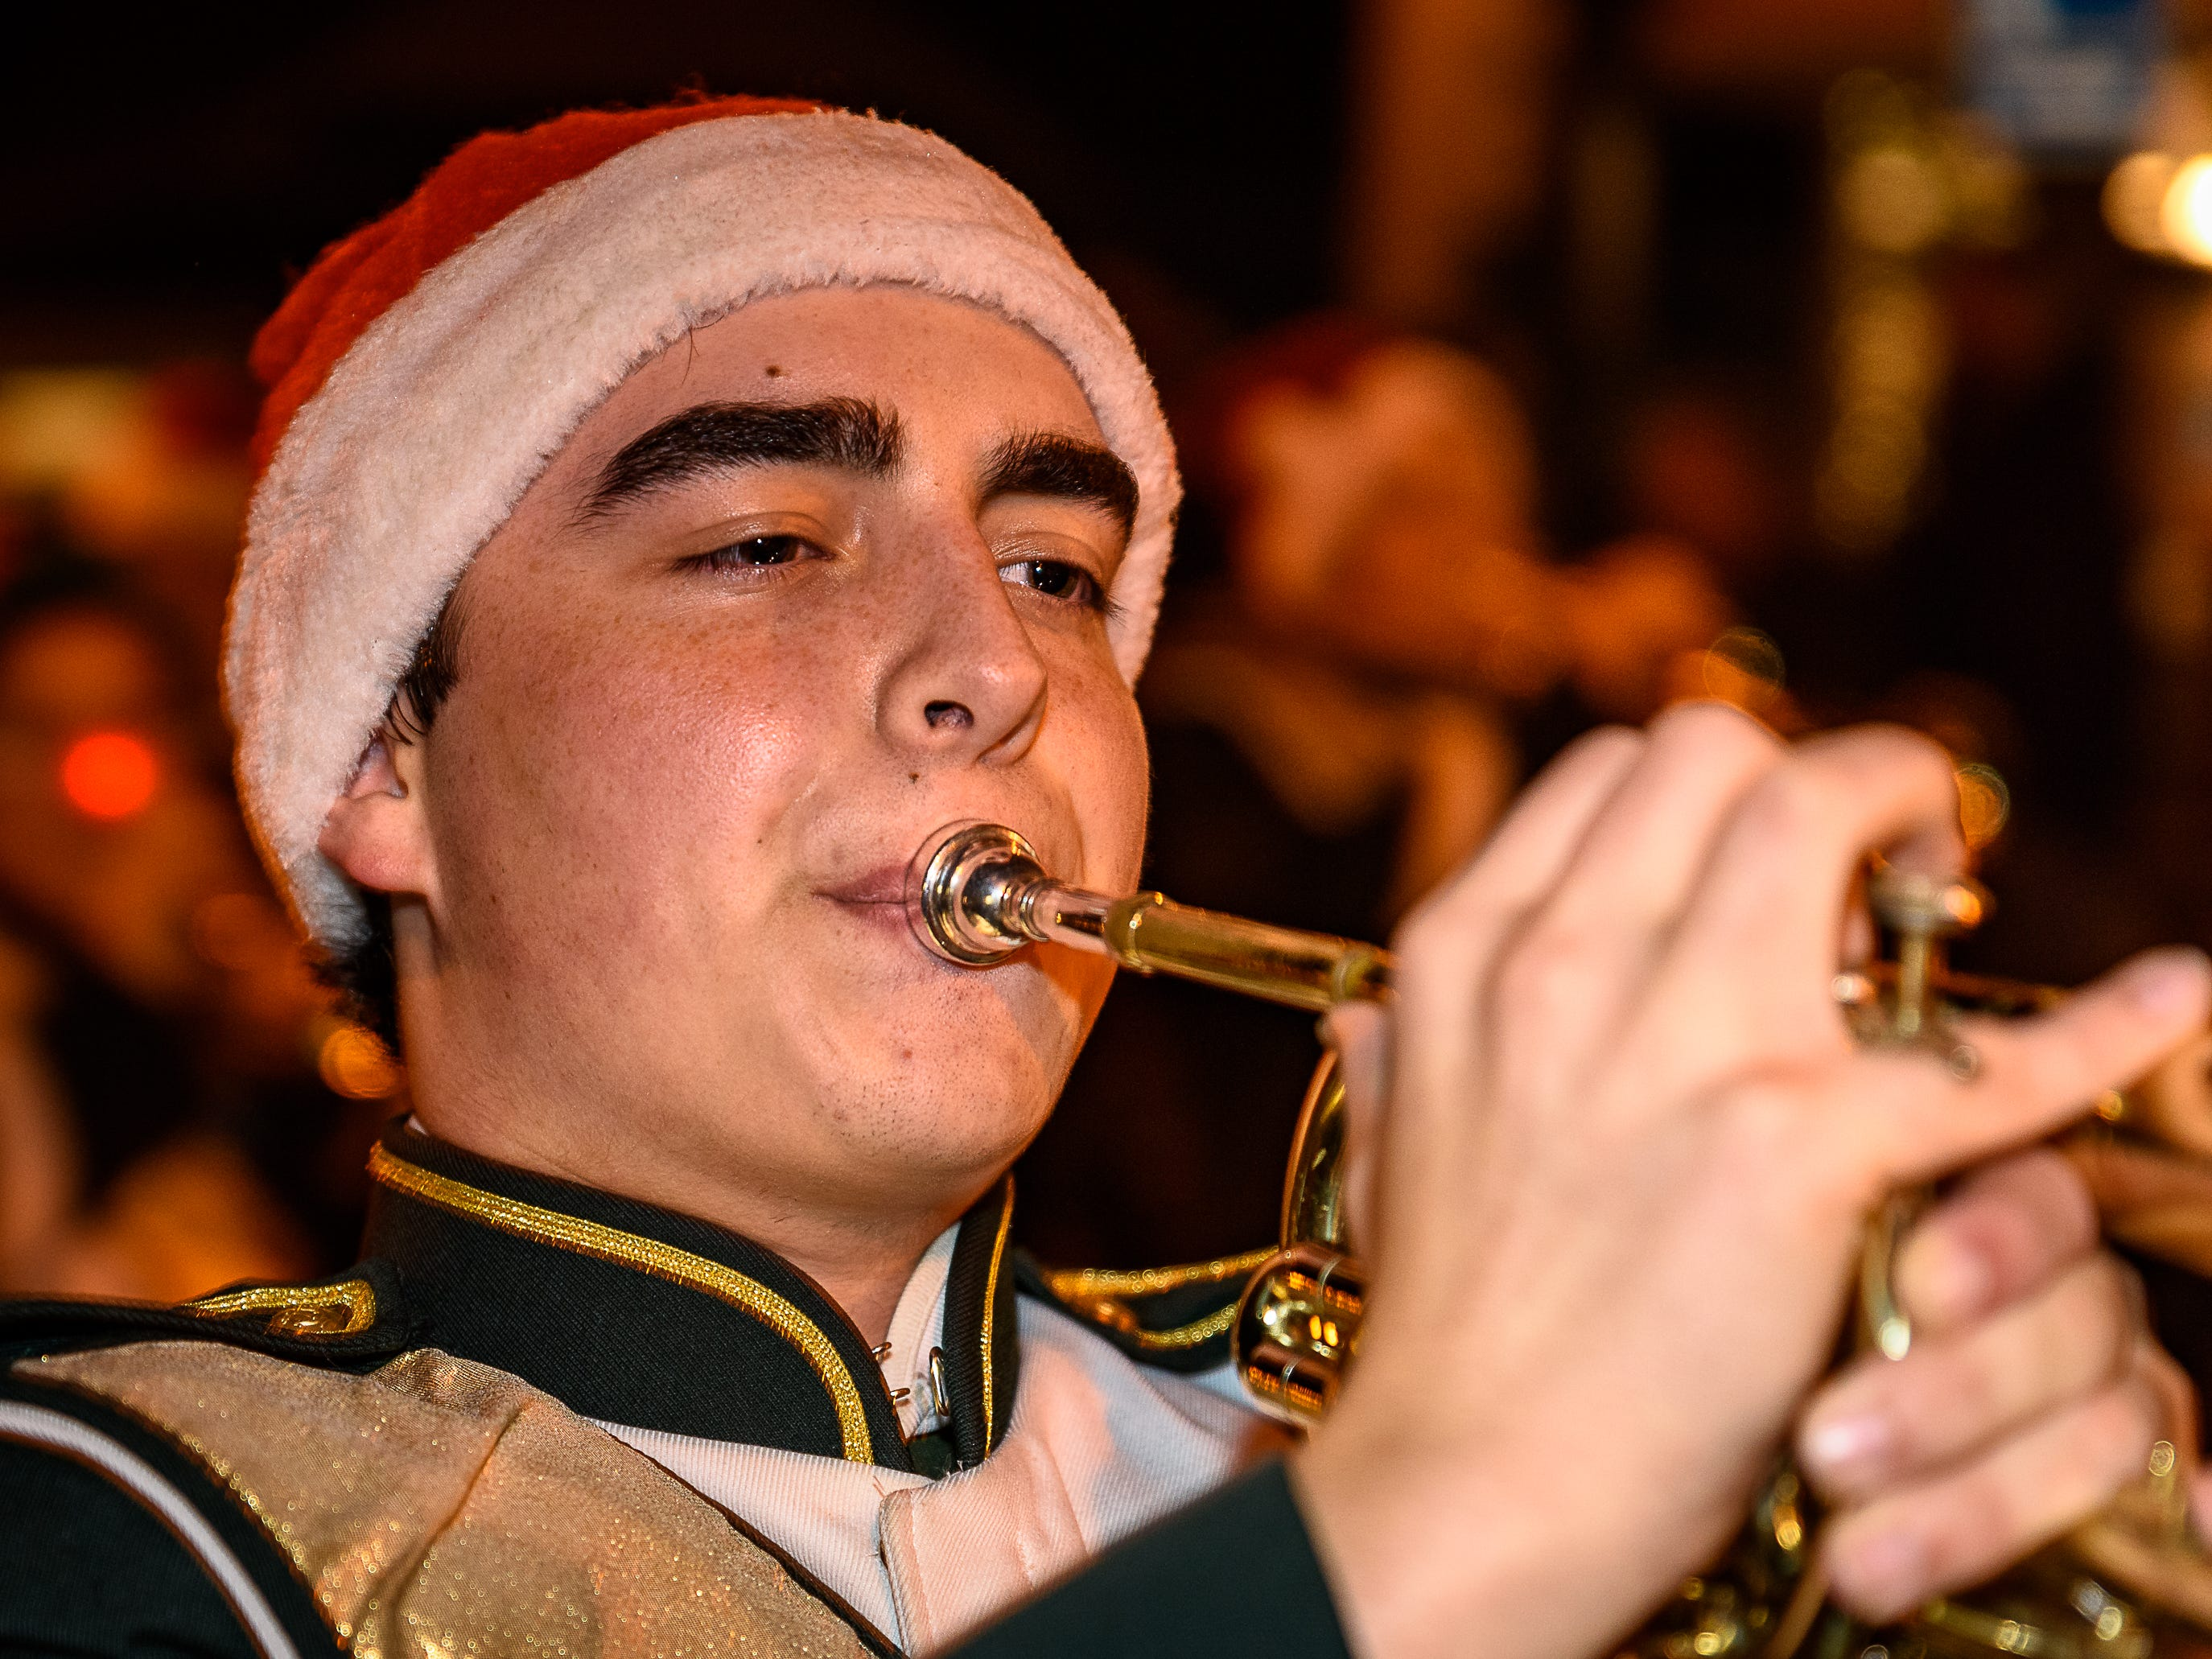 A member of the Indian River High School marching band from Delaware performs in the Chincoteague Christmas parade on Dec. 1.